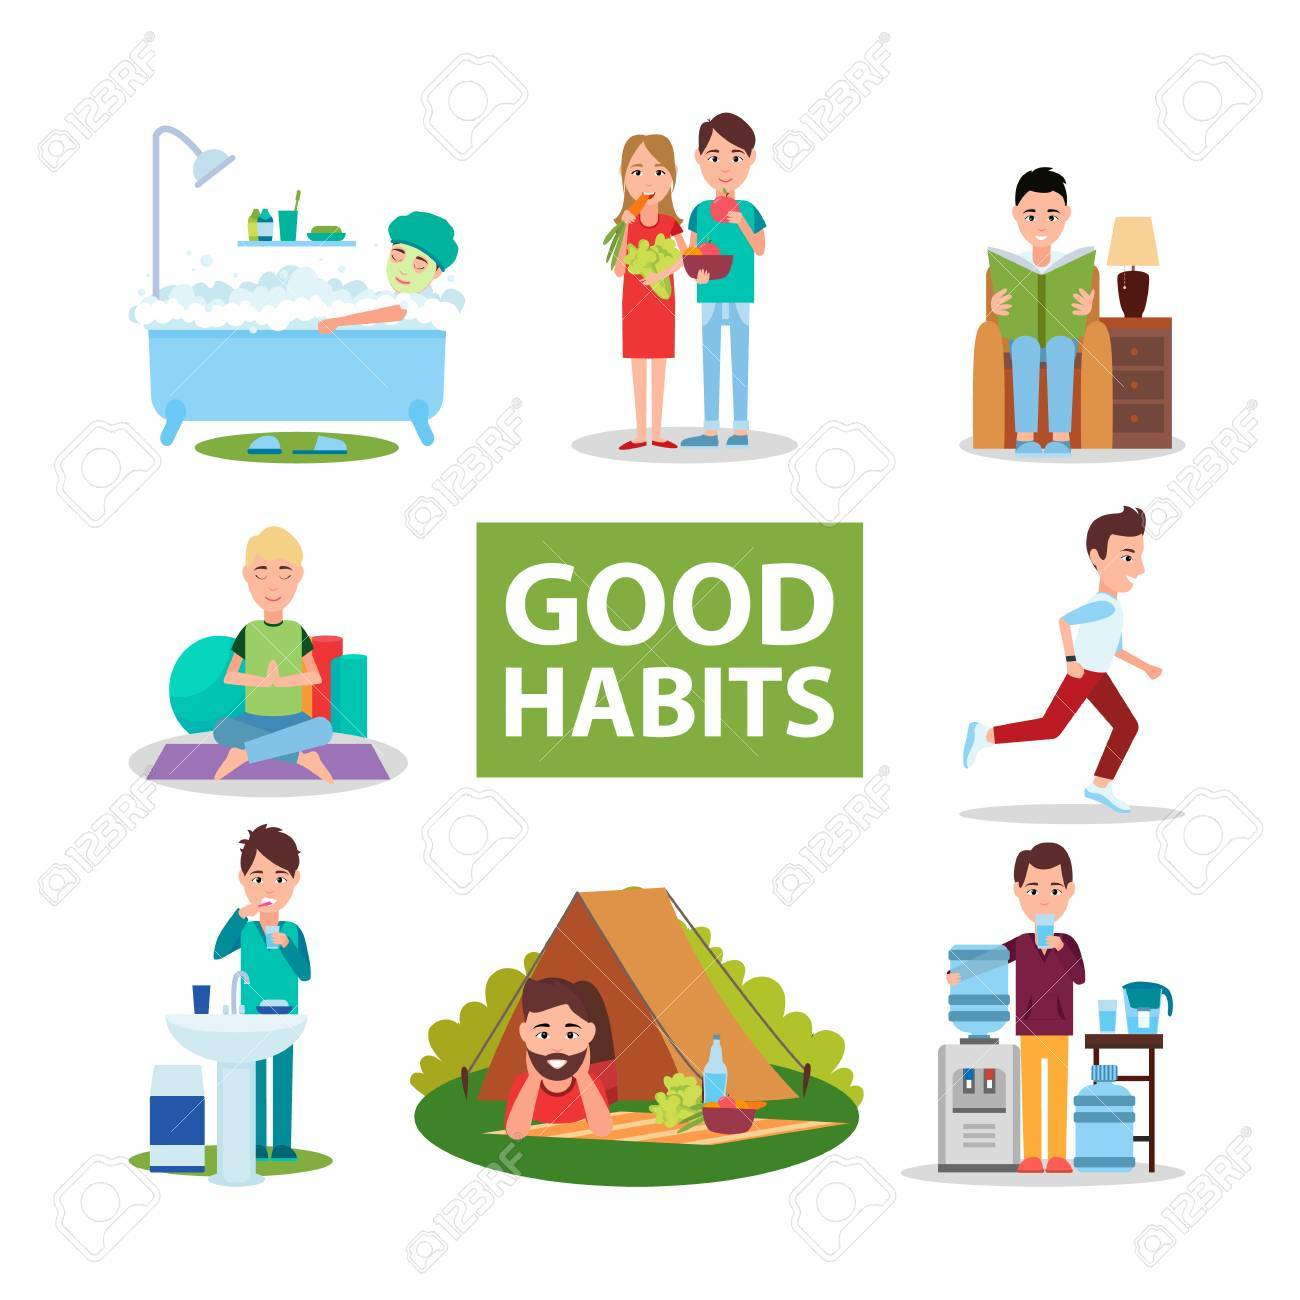 Good Habits Poster with Characters Who Do Right.